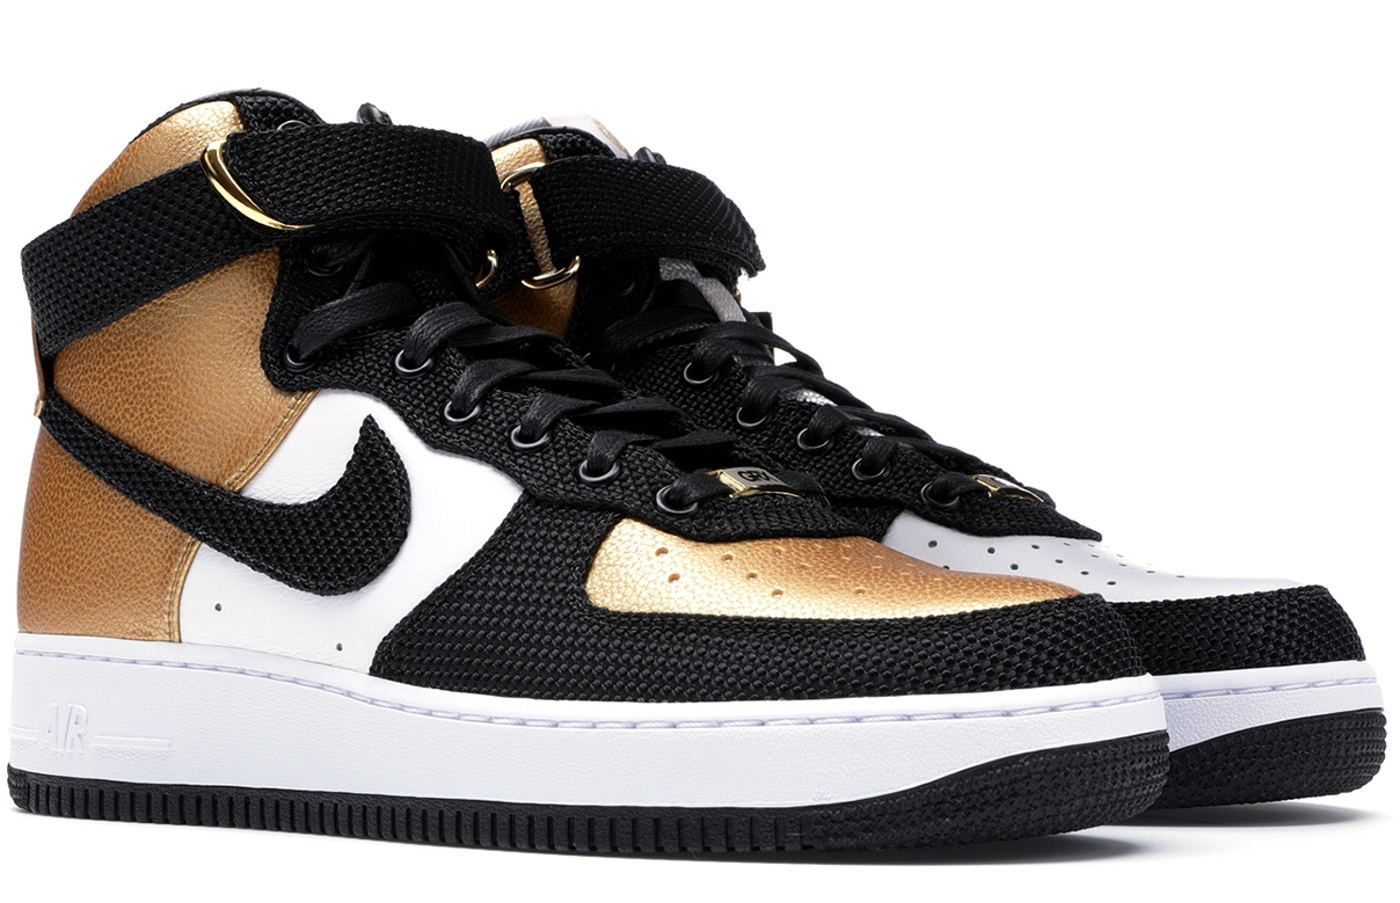 outlet store 12e73 7ae34 ebay dj skee gold rush rally x nike air force 1 bespoke raffle sole  collector 650d1